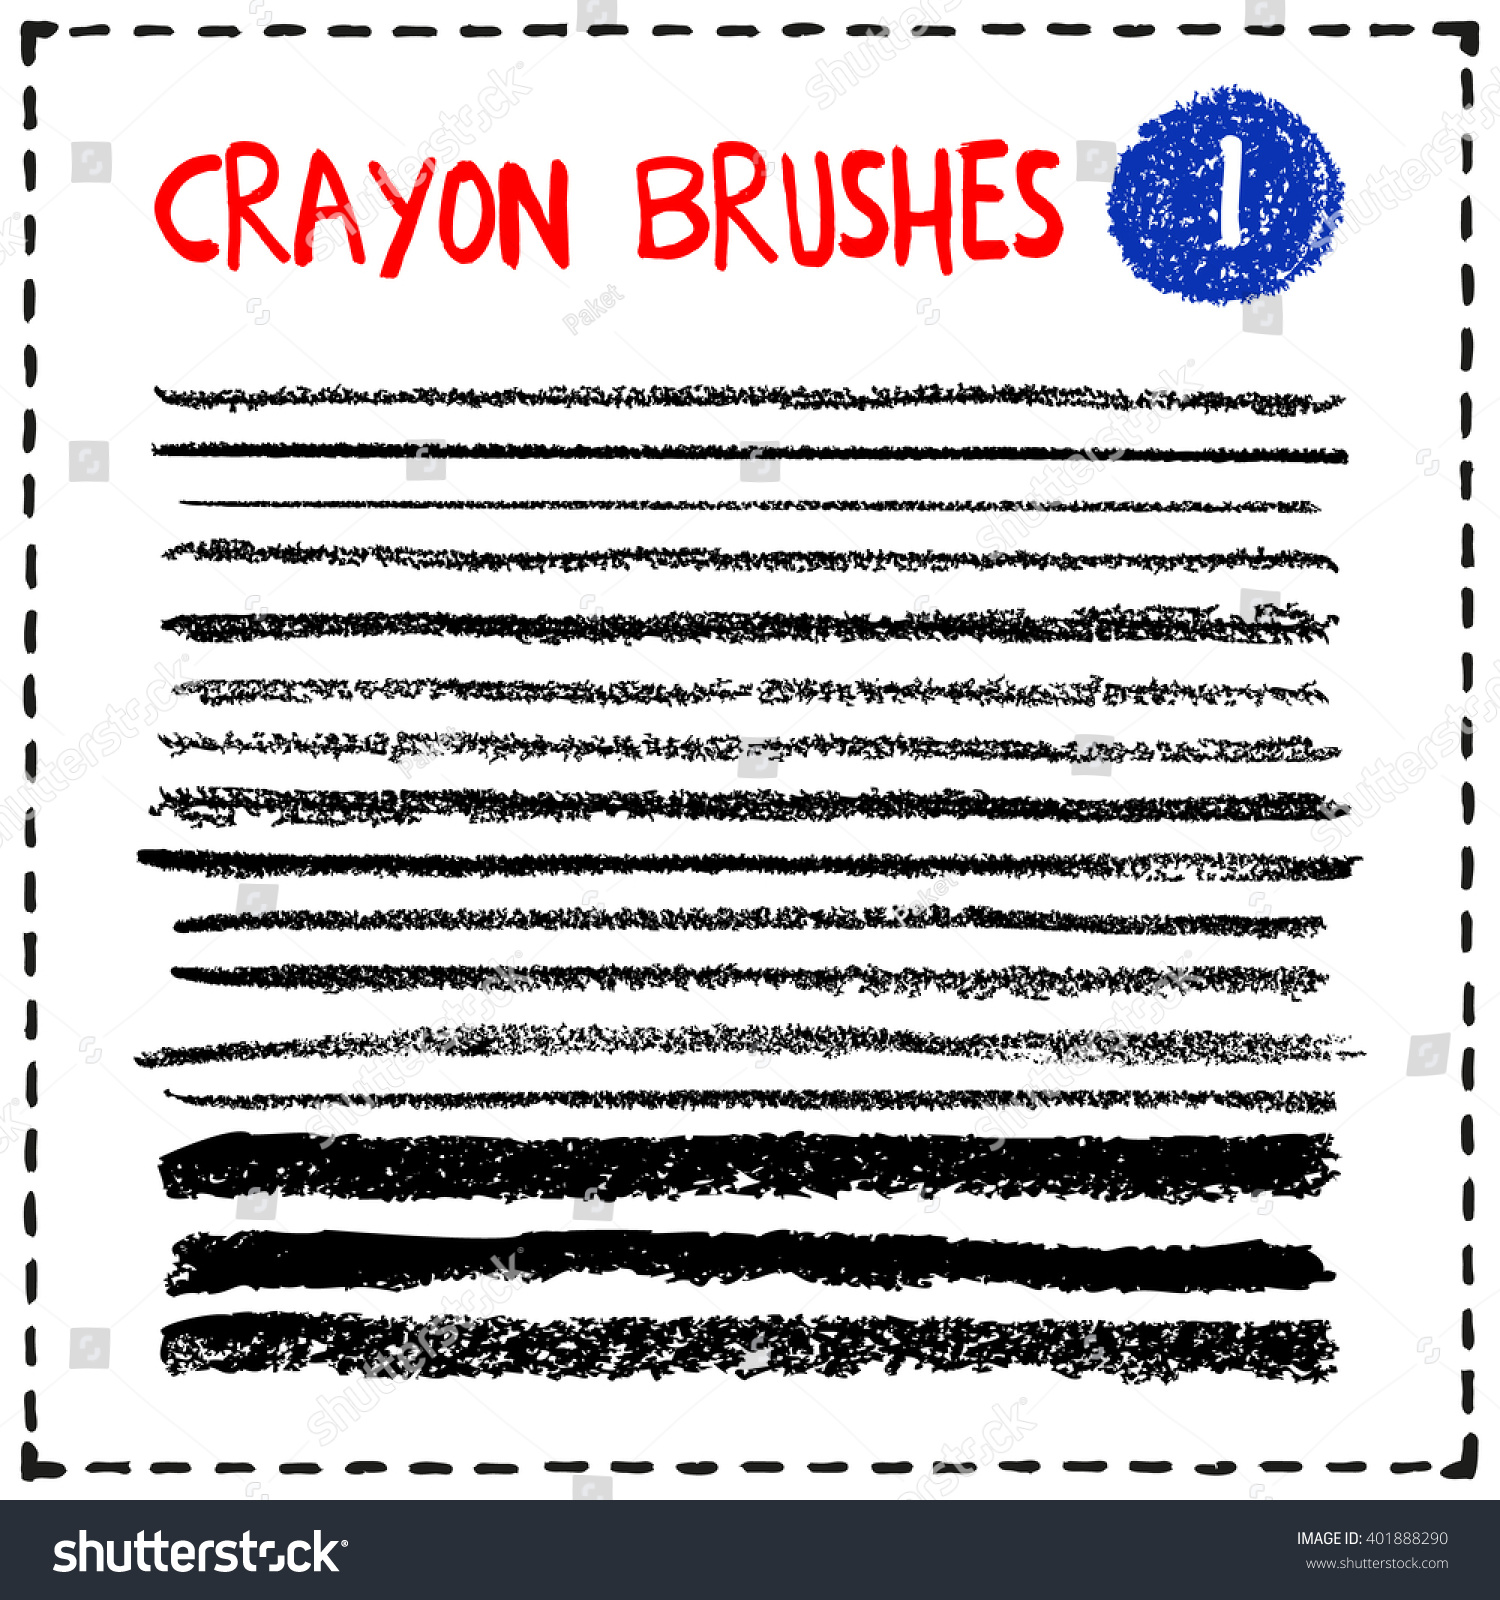 set crayon brushes grunge lines texture stock vector royalty free